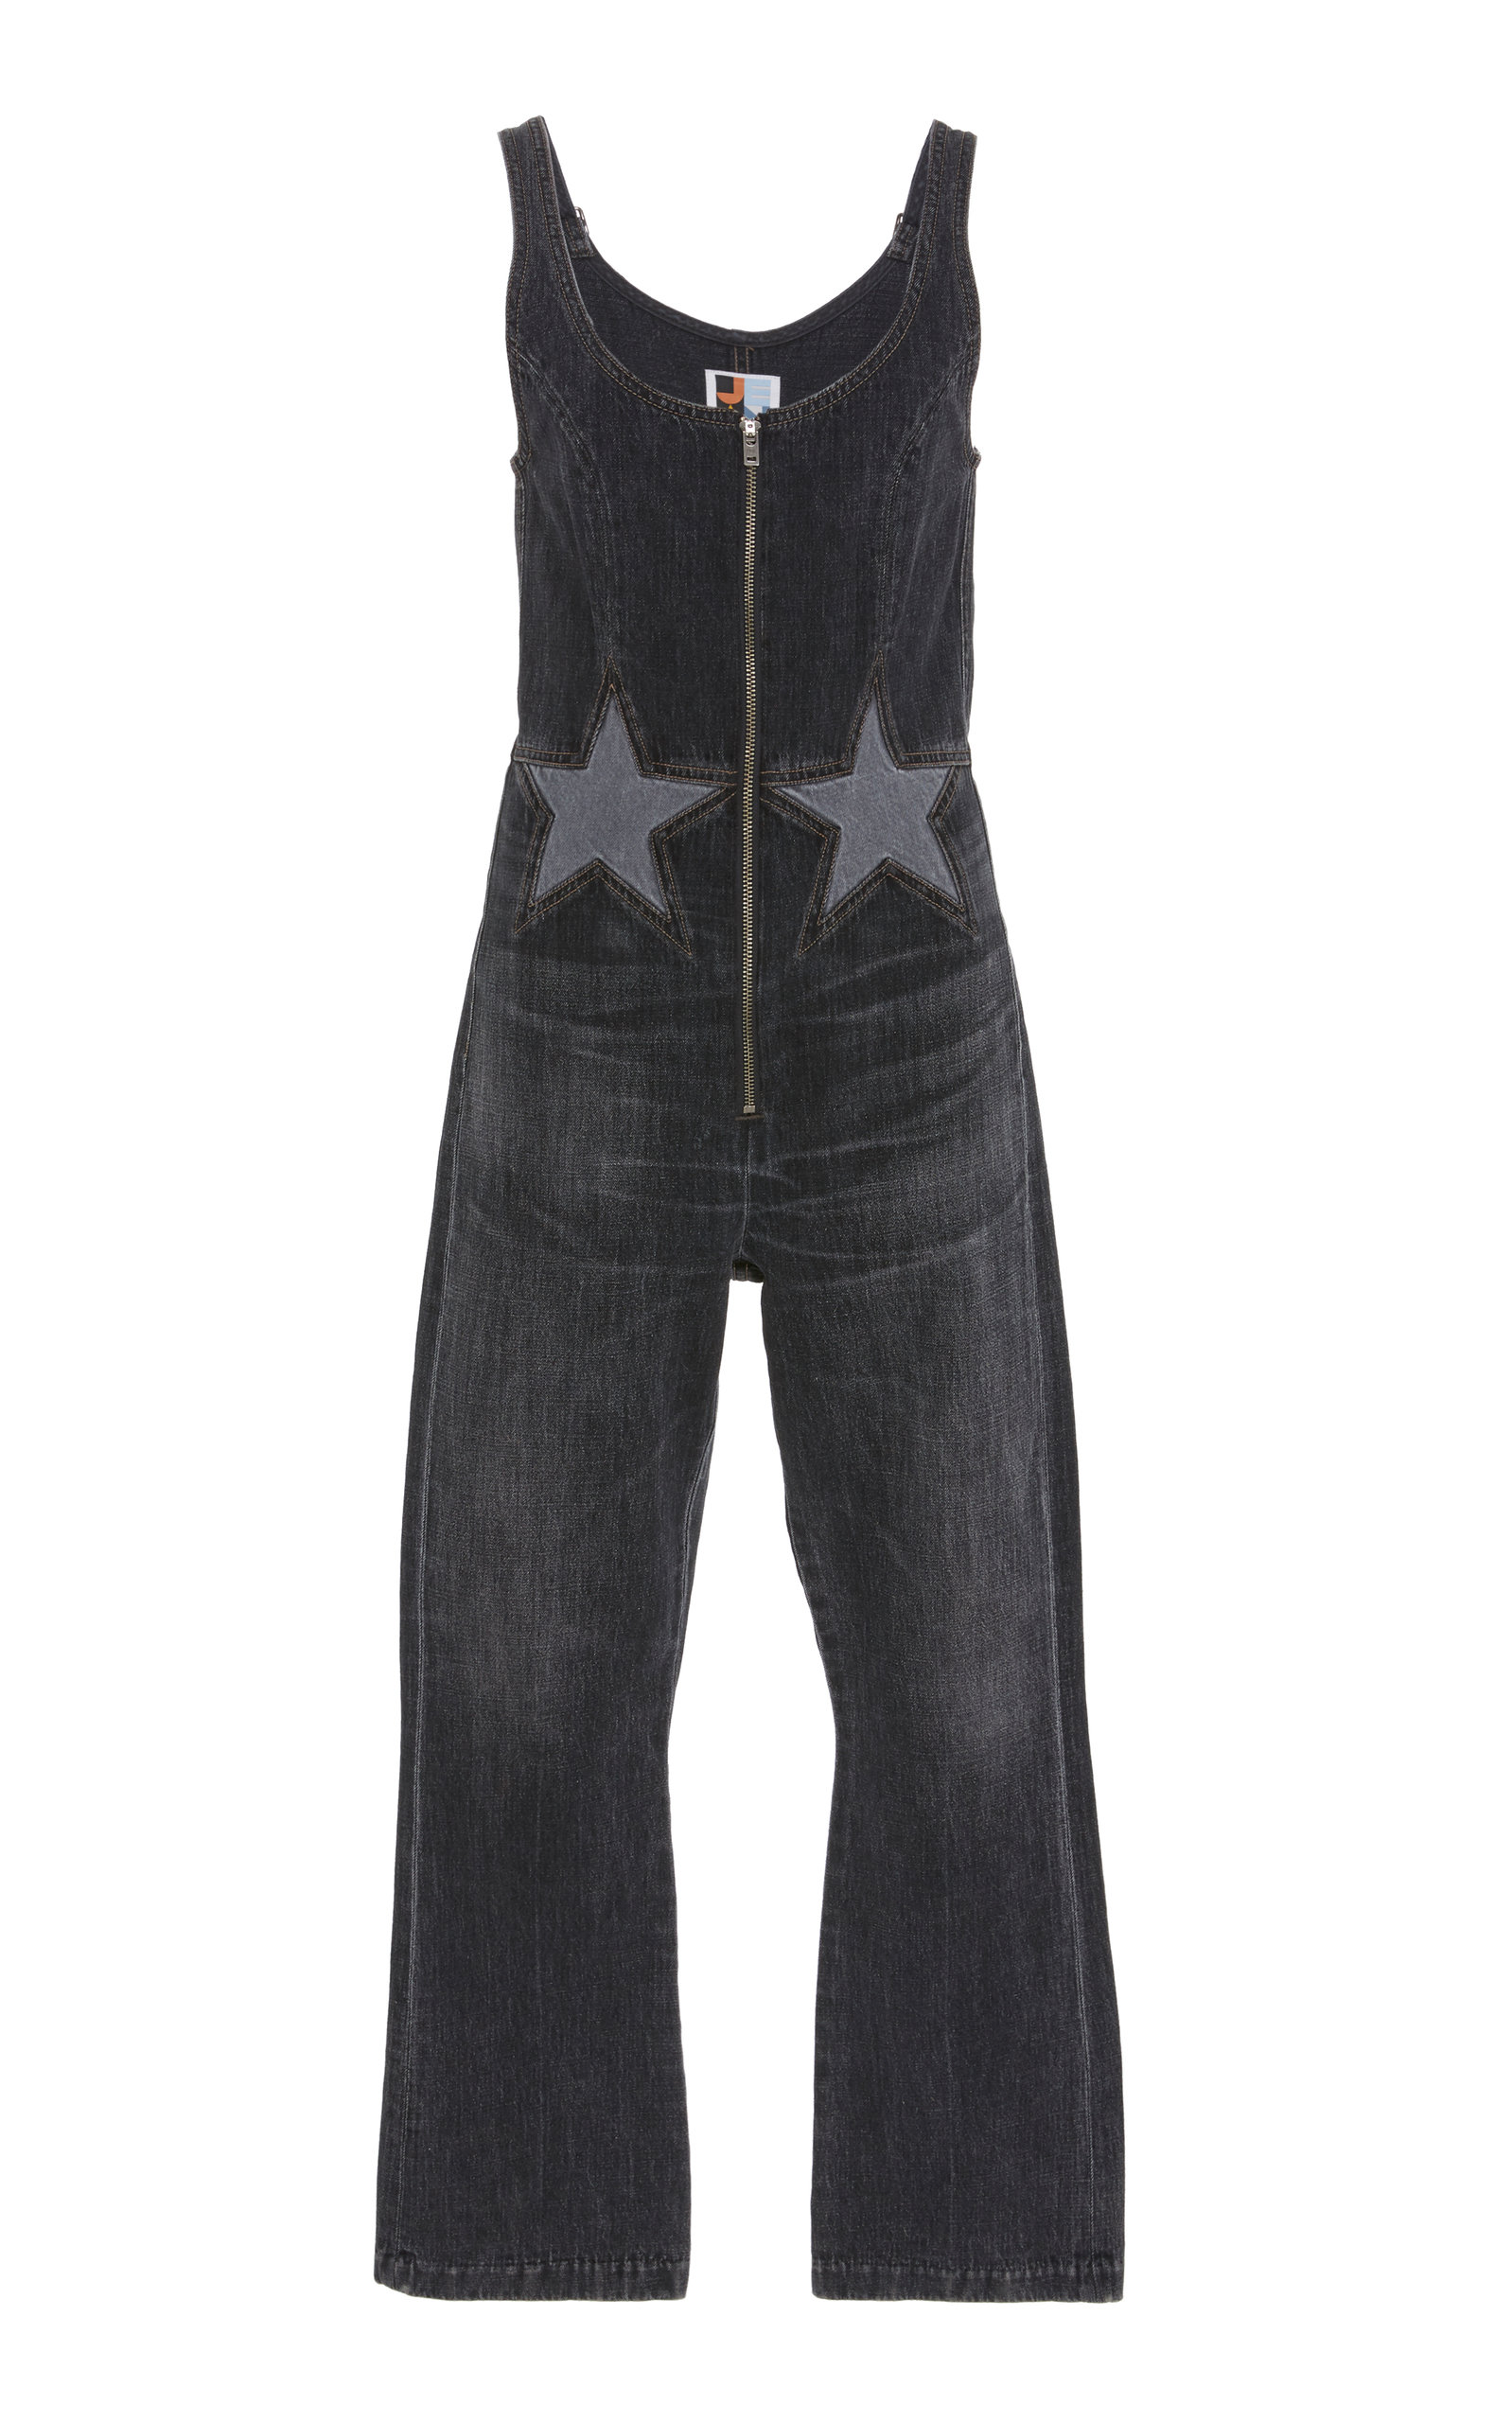 ab7bb91c35d Jean AtelierDenim Star Jumpsuit. CLOSE. Loading